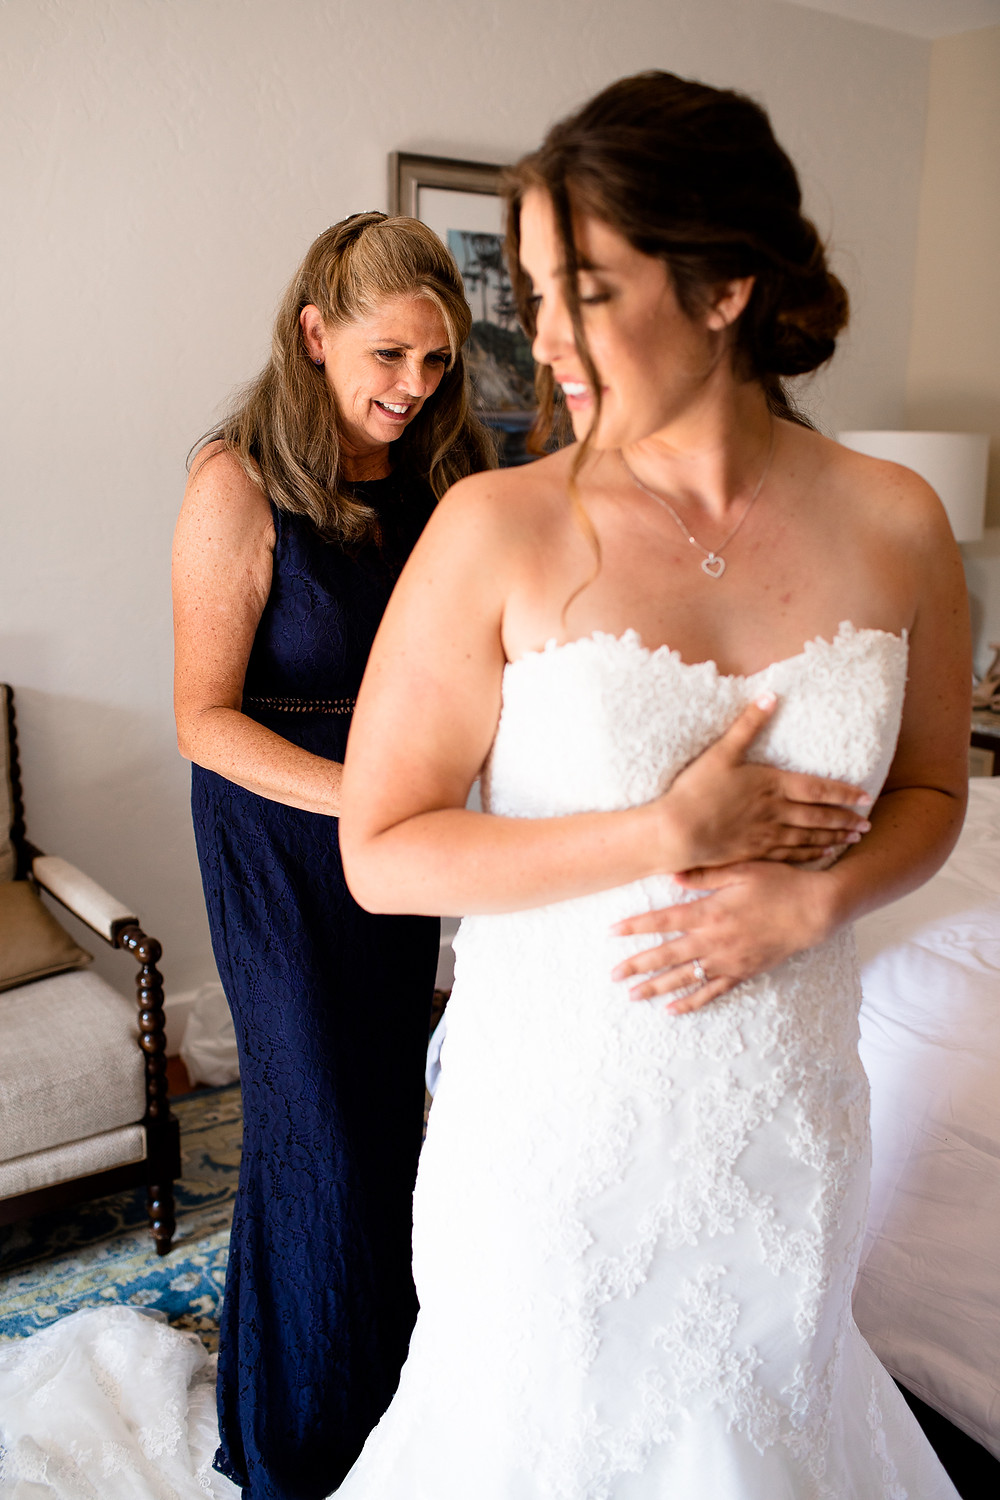 mom helping her daughter into her wedding dress